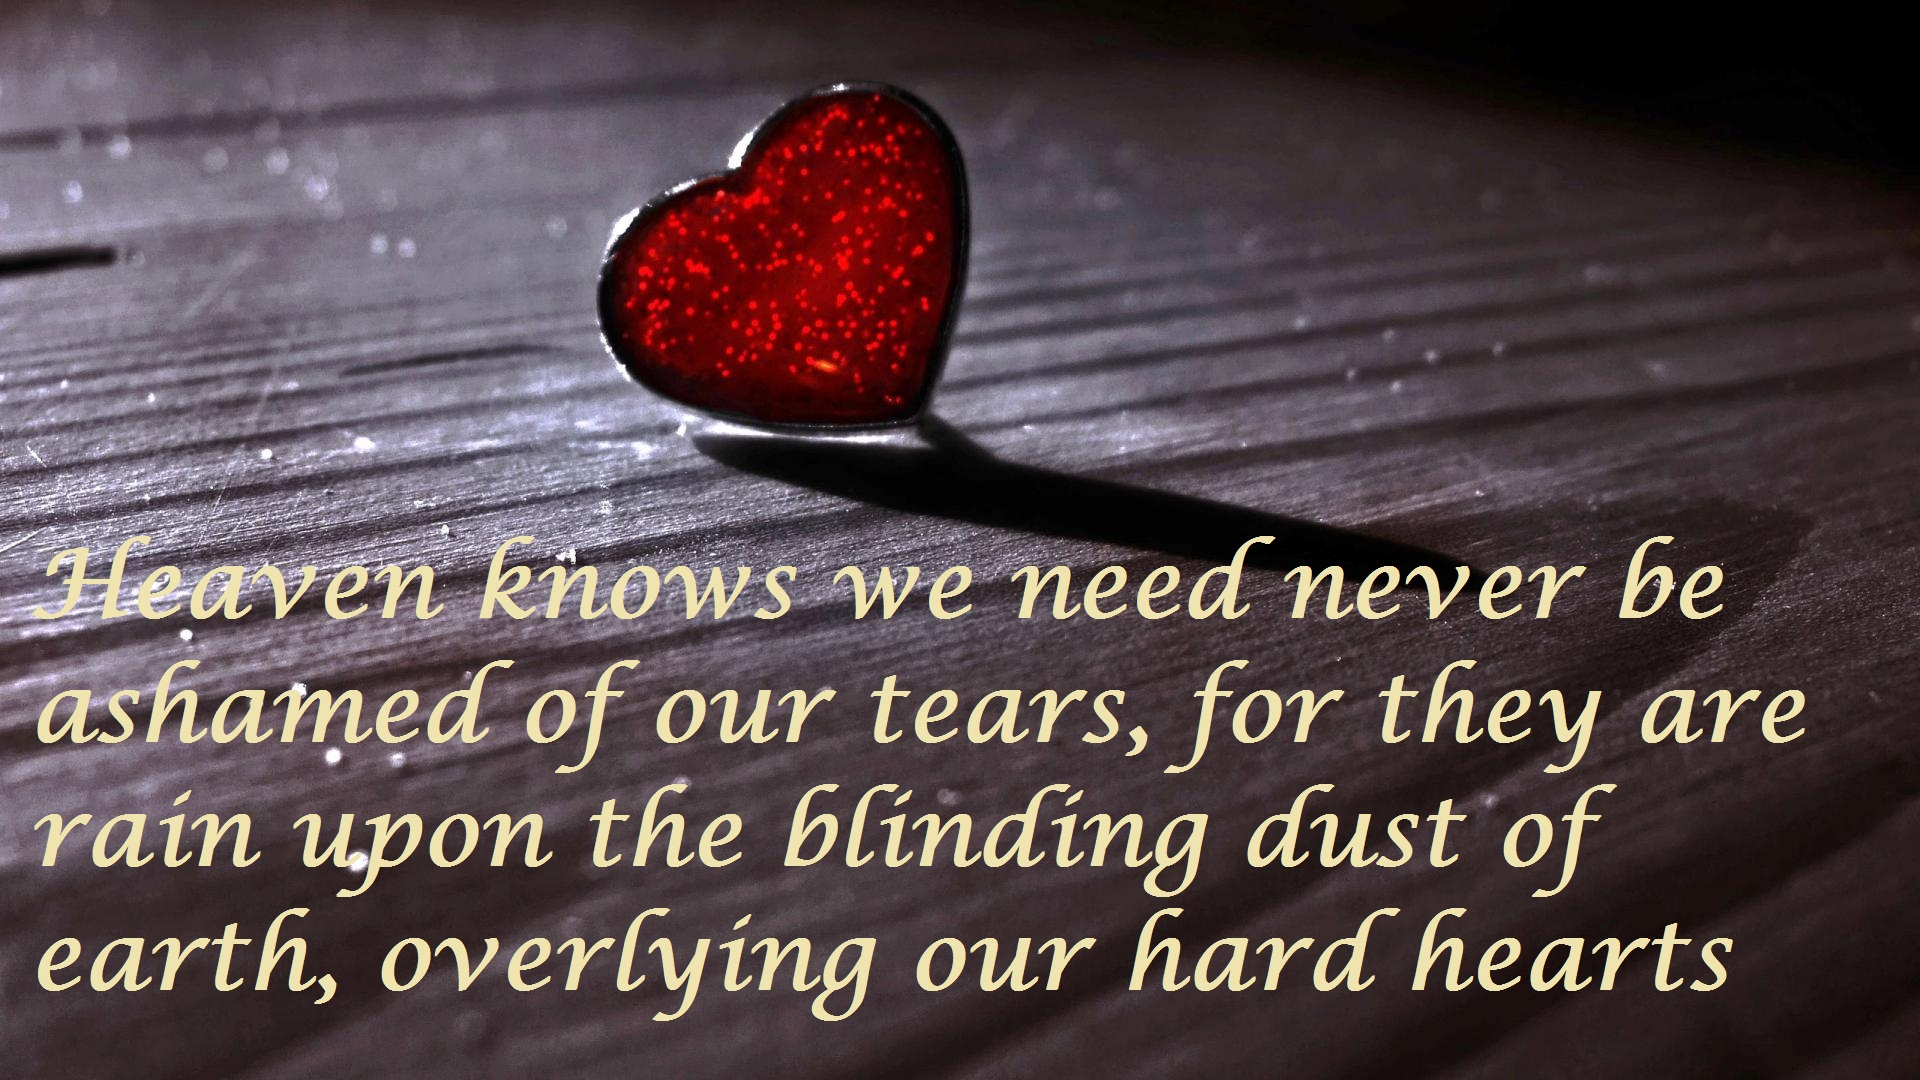 Broken Heart Sad Quotes With Wallpapers Images Hd 2016: Broken Heart Wallpapers With Quotes